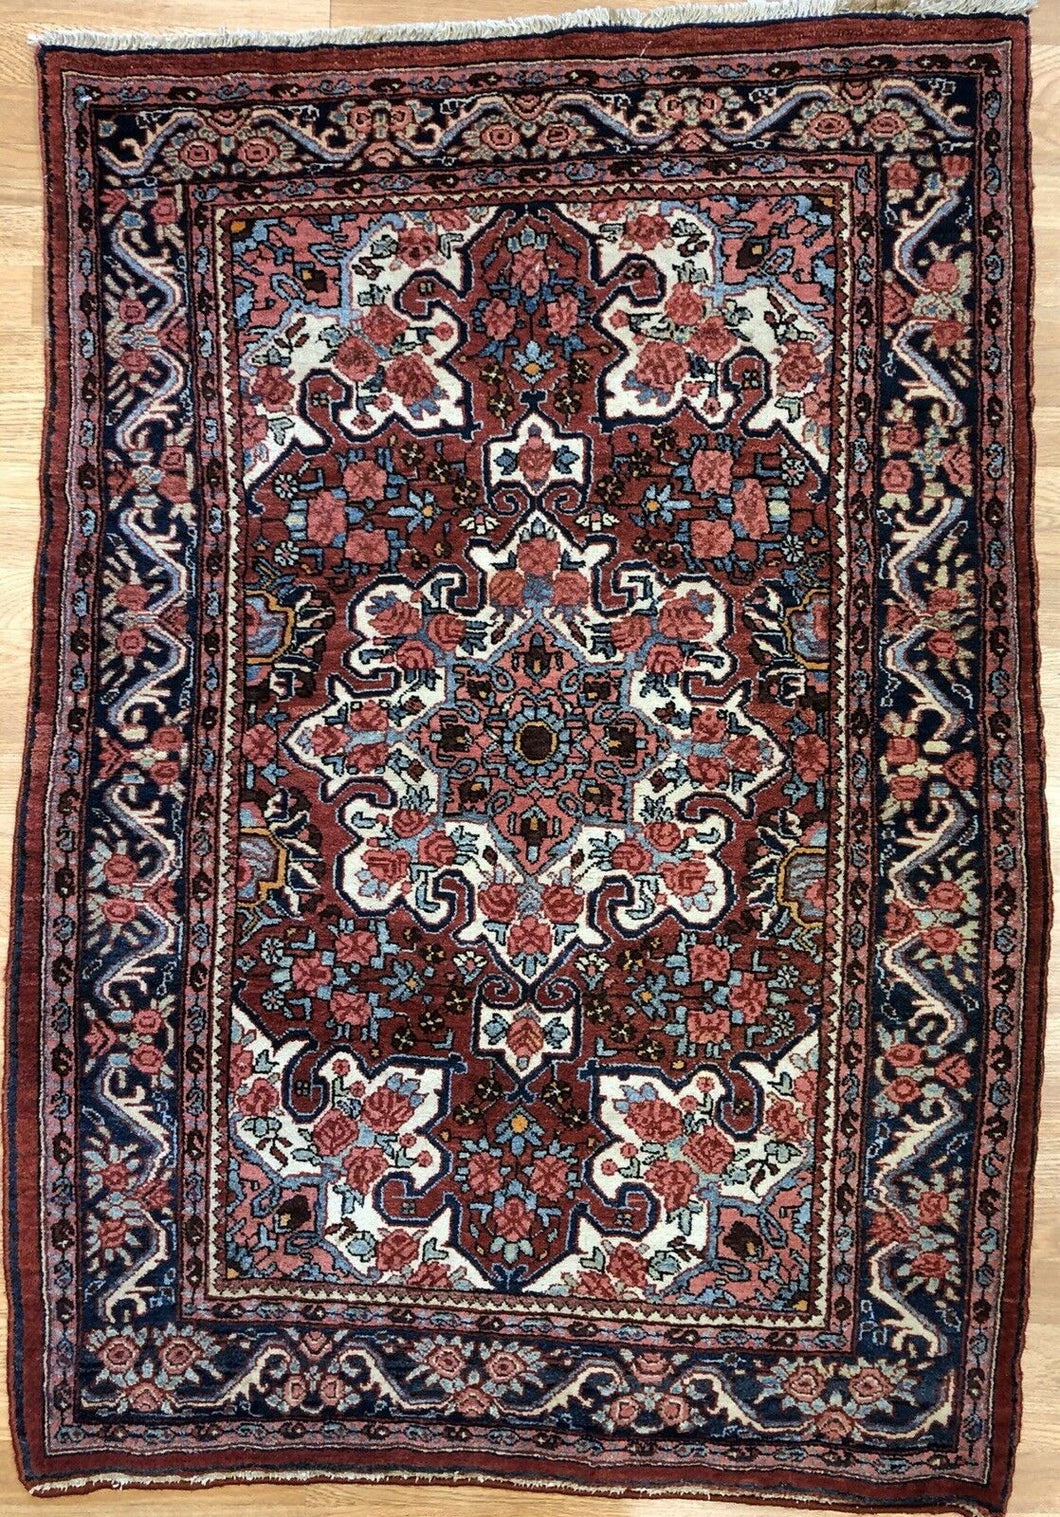 Gorgeous Gol Farang - 1910s Antique Bijar Rug - Tribal Carpet - 3'7